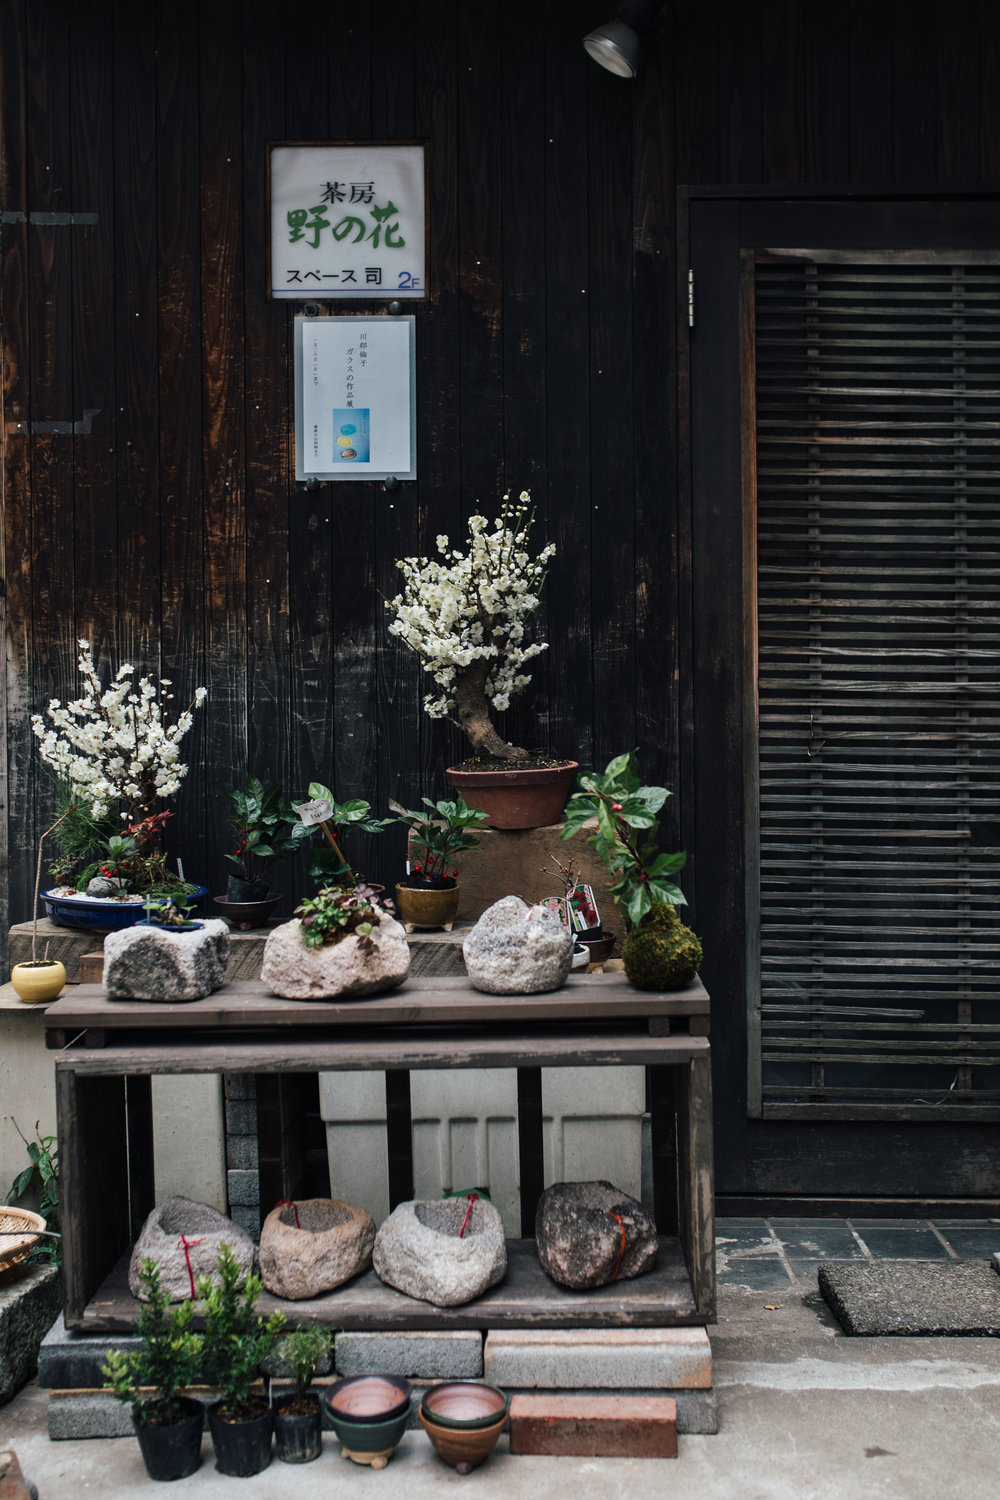 Tsukasa, a charming florist in Ginza, Tokyo, dedicated to native plants and wild grasses.